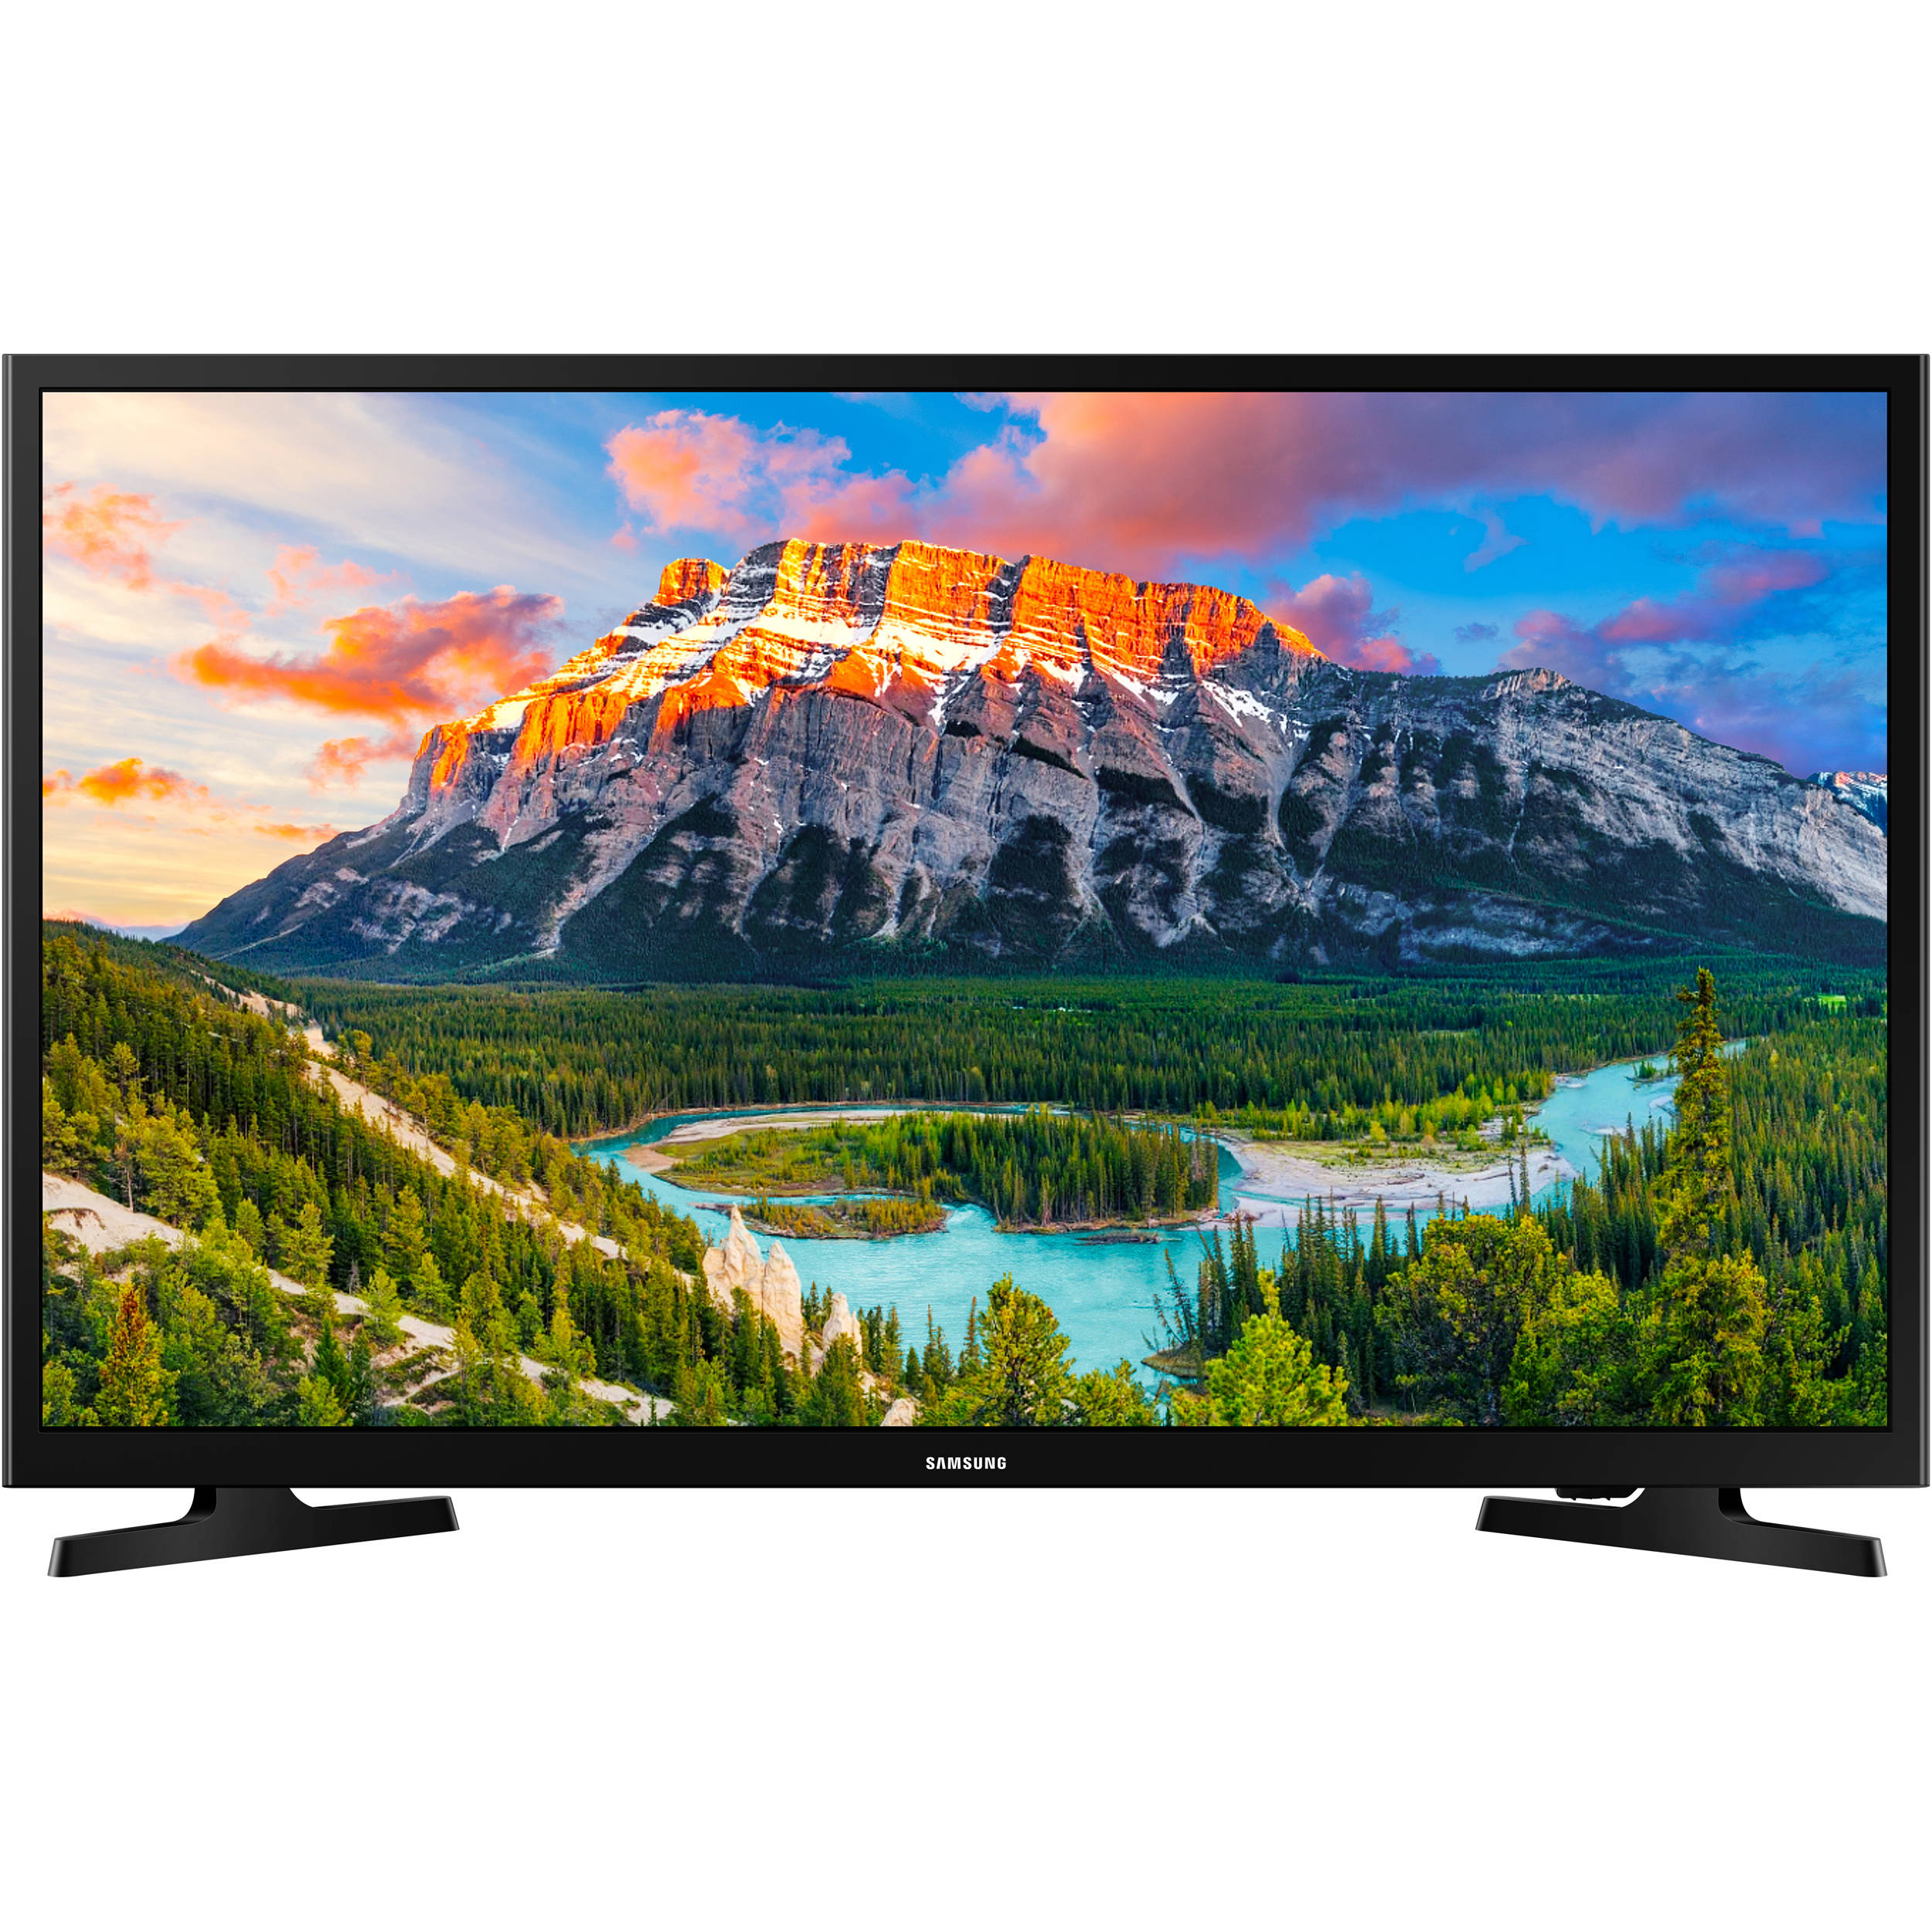 Samsung UE24EH4500W LED TV Drivers for Windows XP